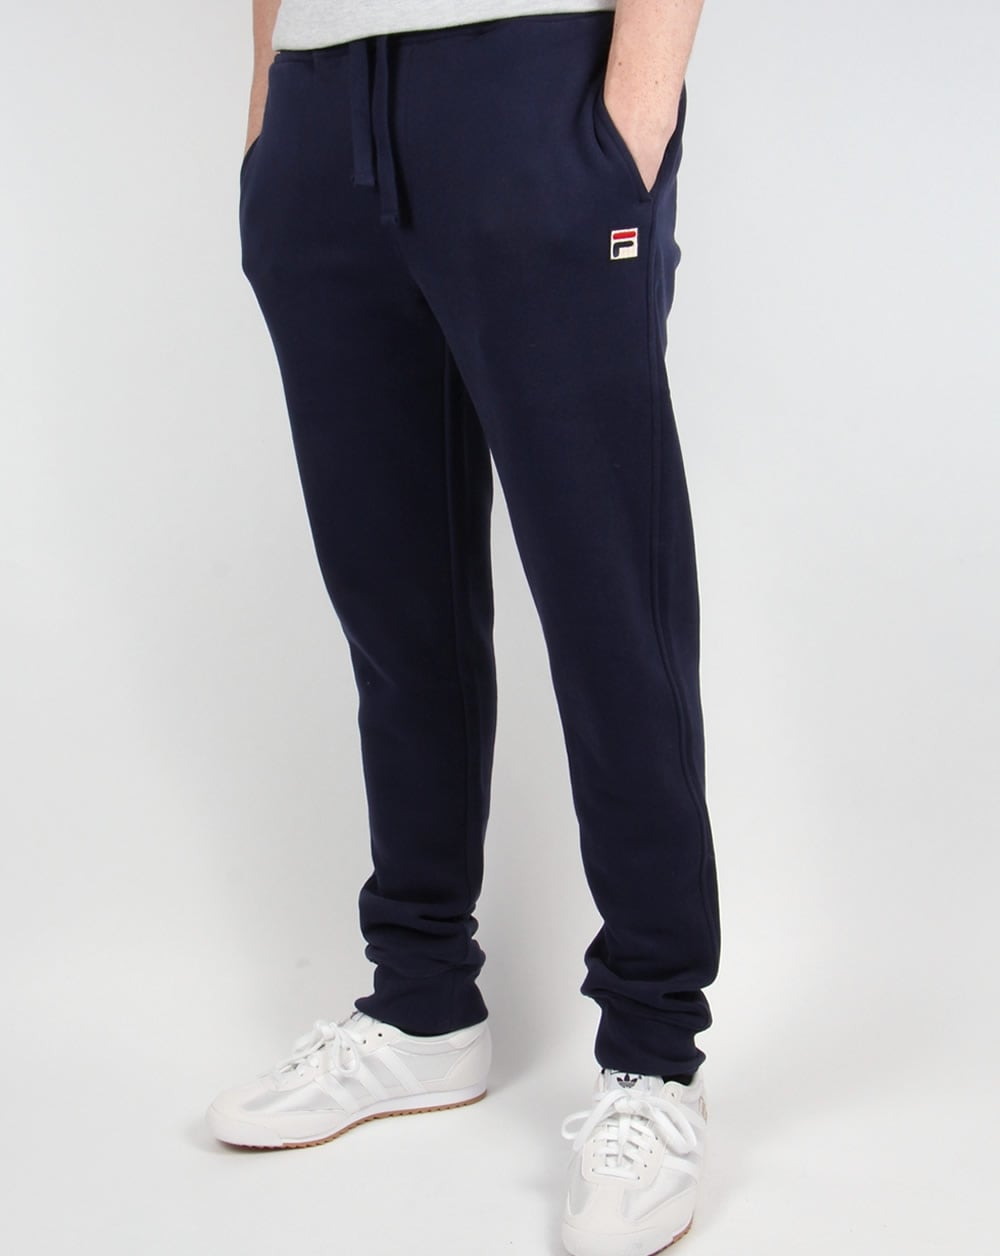 Fila Vintage Visconti Track Pants Navy Blue Tracksuit